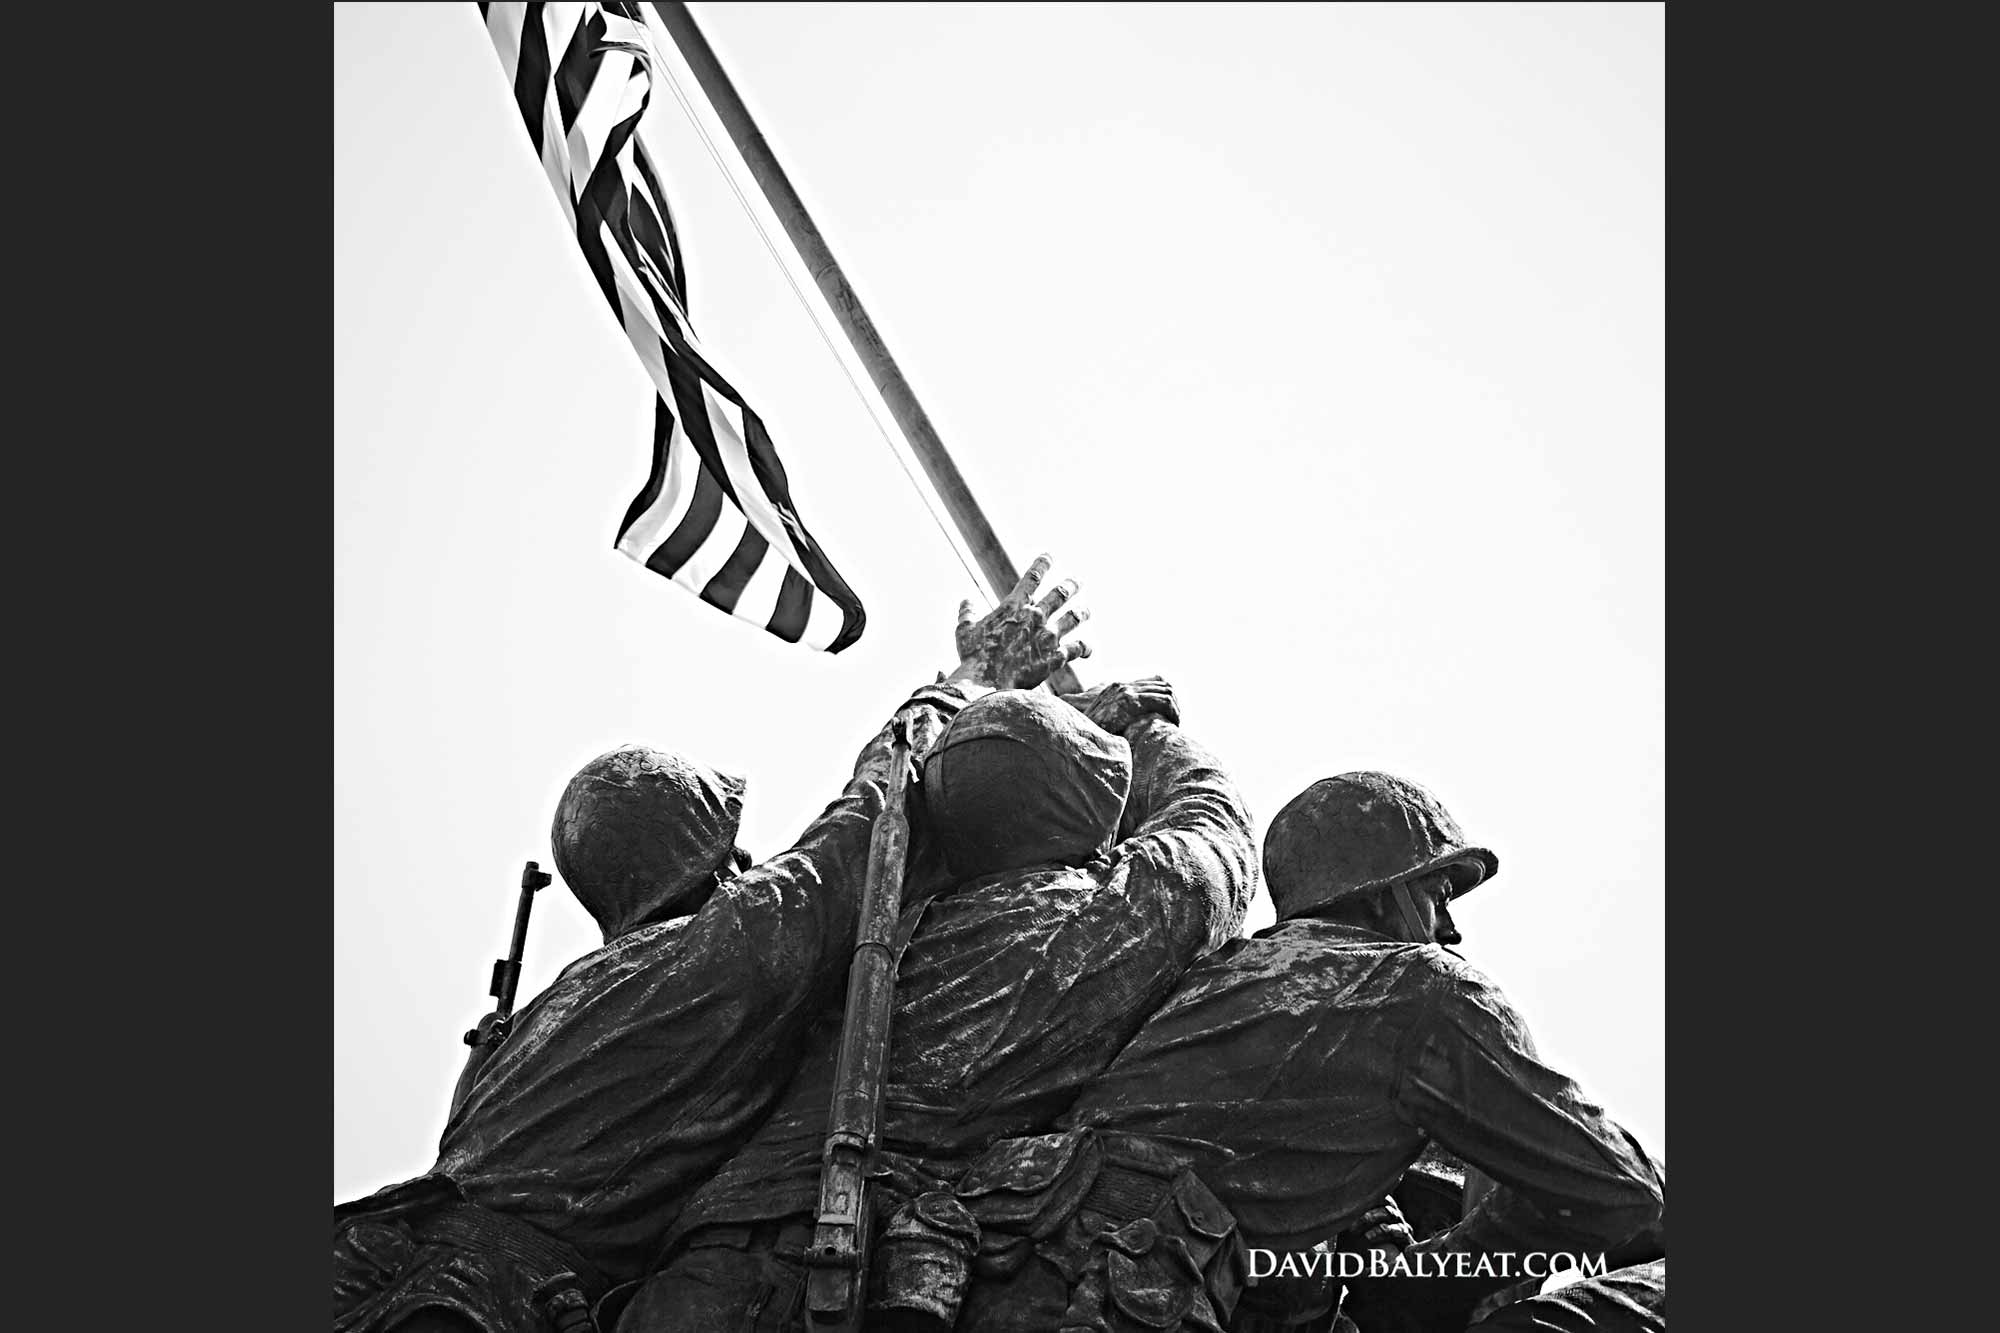 Iwo jima marine corps war memorial washington dc high definition hd professional landscape photography